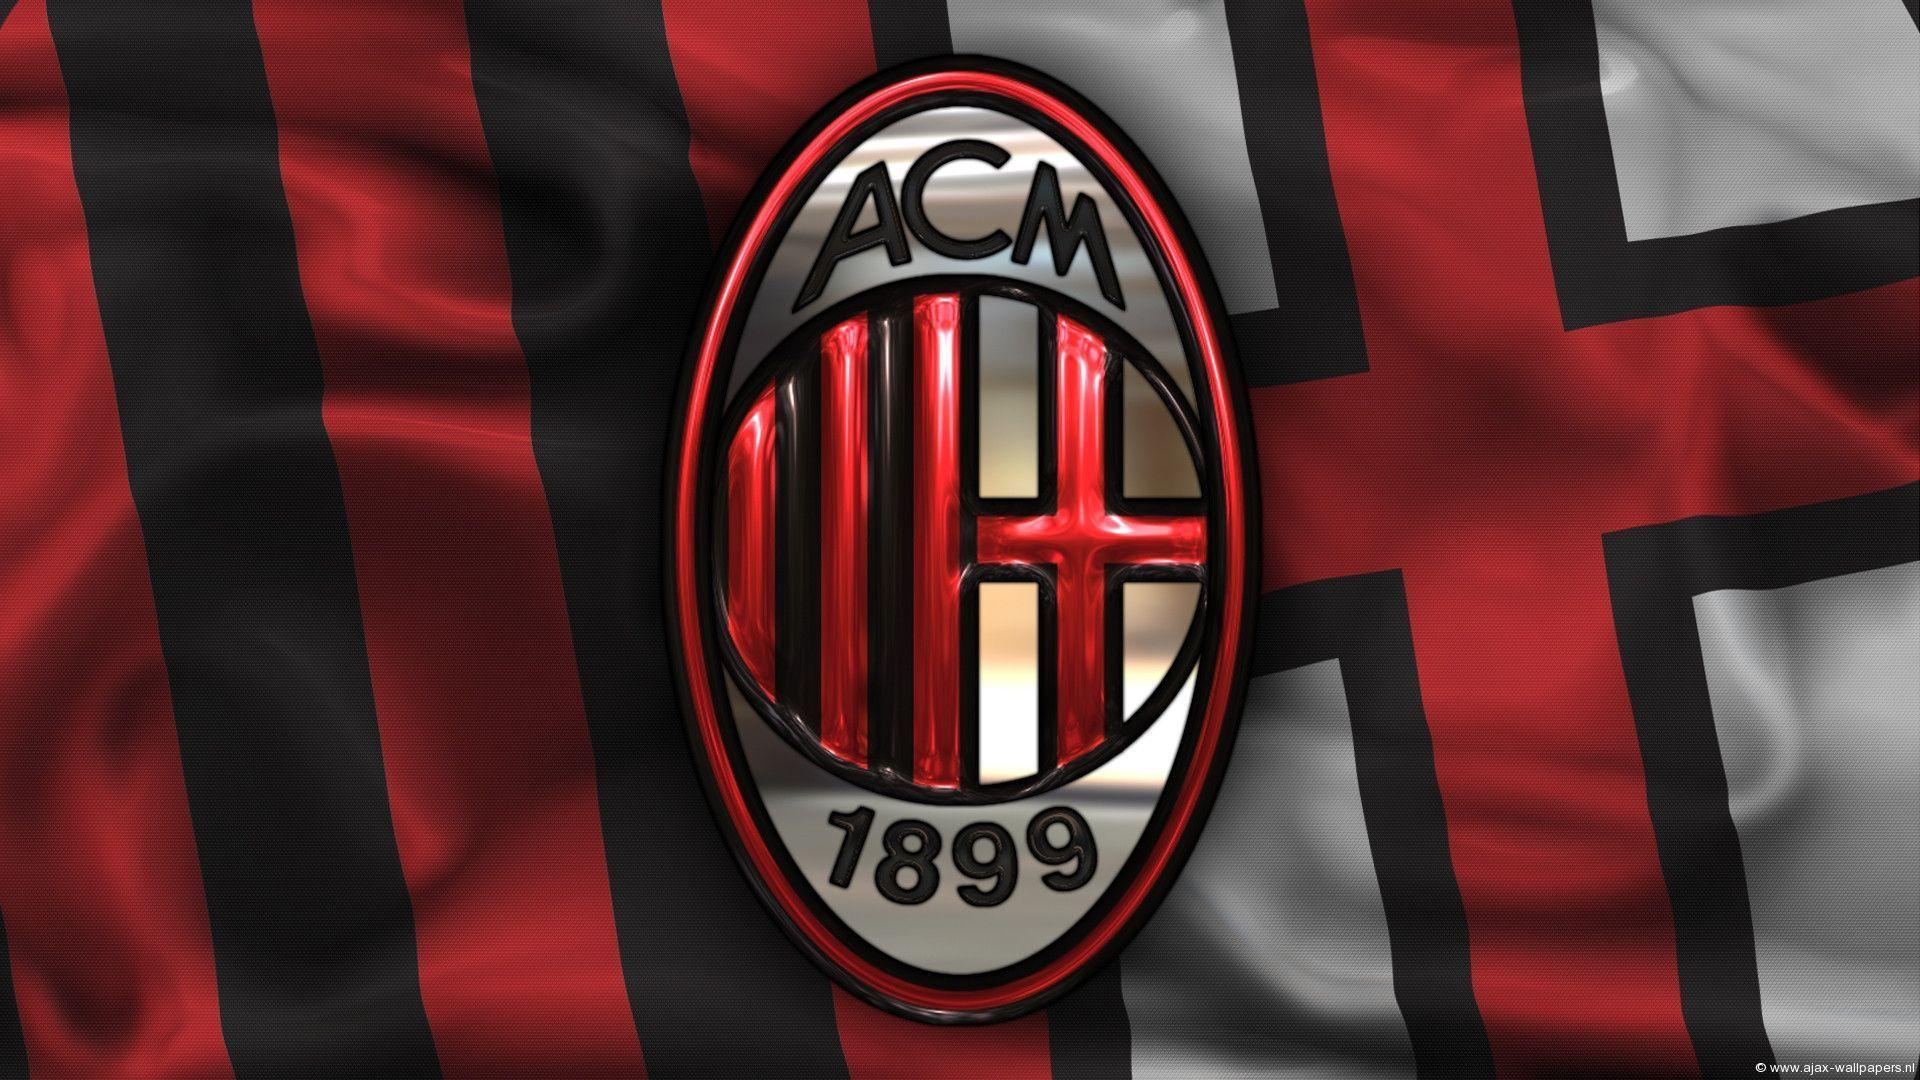 Ac Milan Awesome Logo Hd Wallpapers Wallpapers